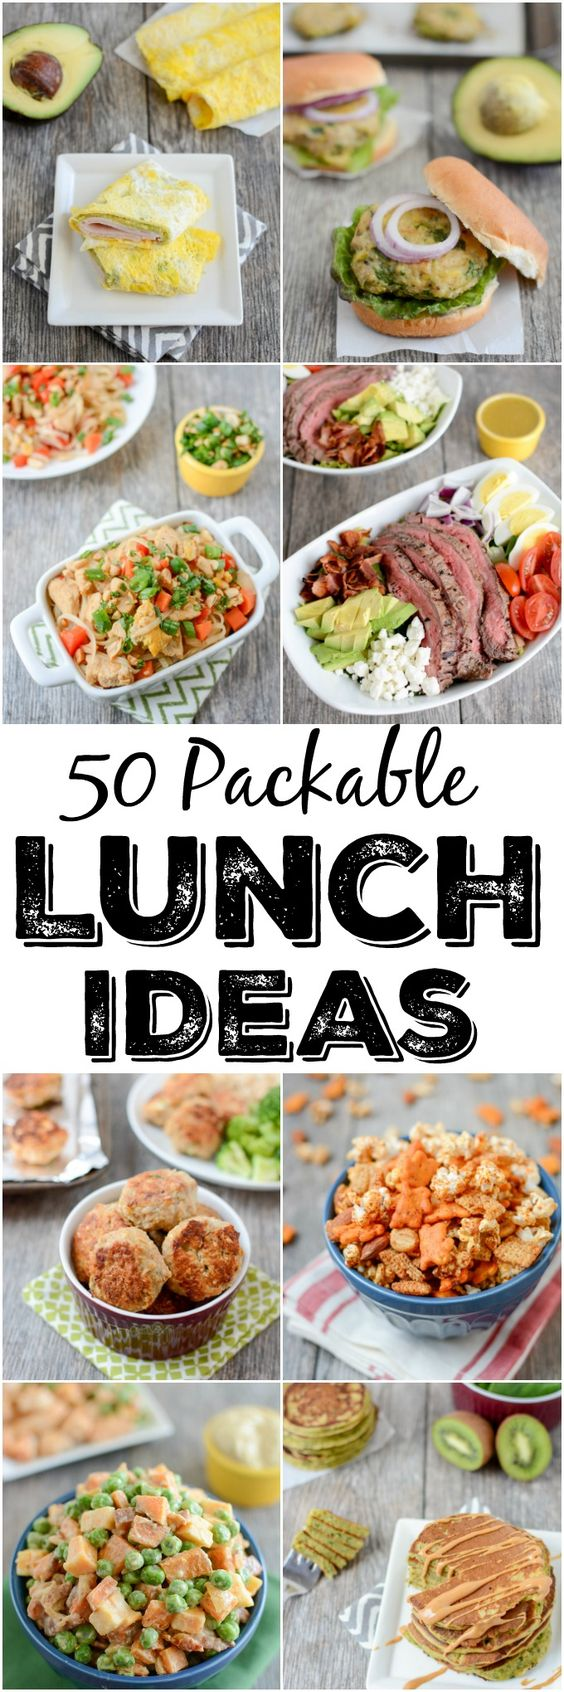 50 lunch ideas for work mom lunch ideas for work and for kids